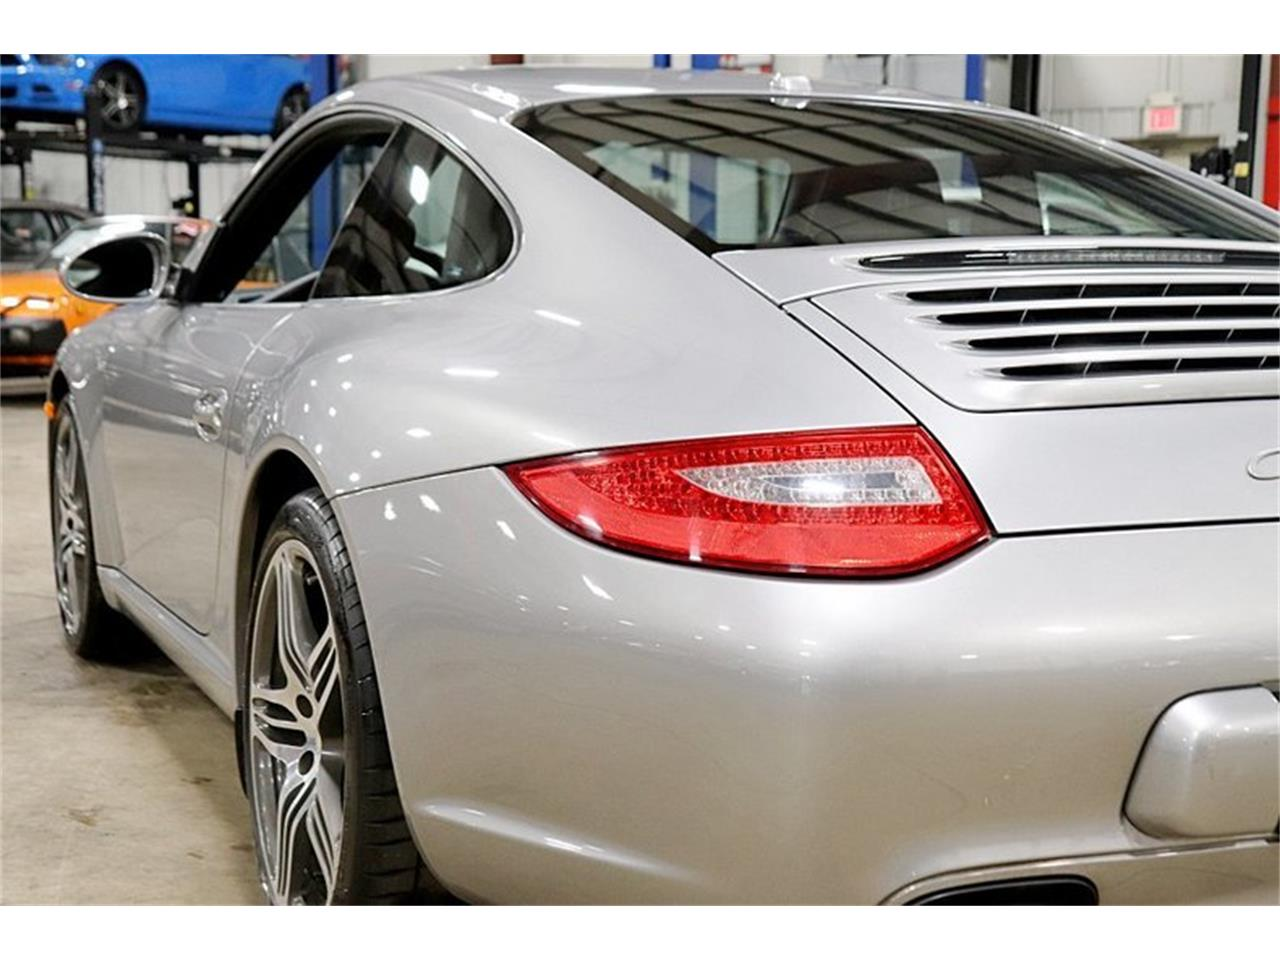 Large Picture of 2009 Porsche 911 located in Michigan - $35,900.00 - Q2EE